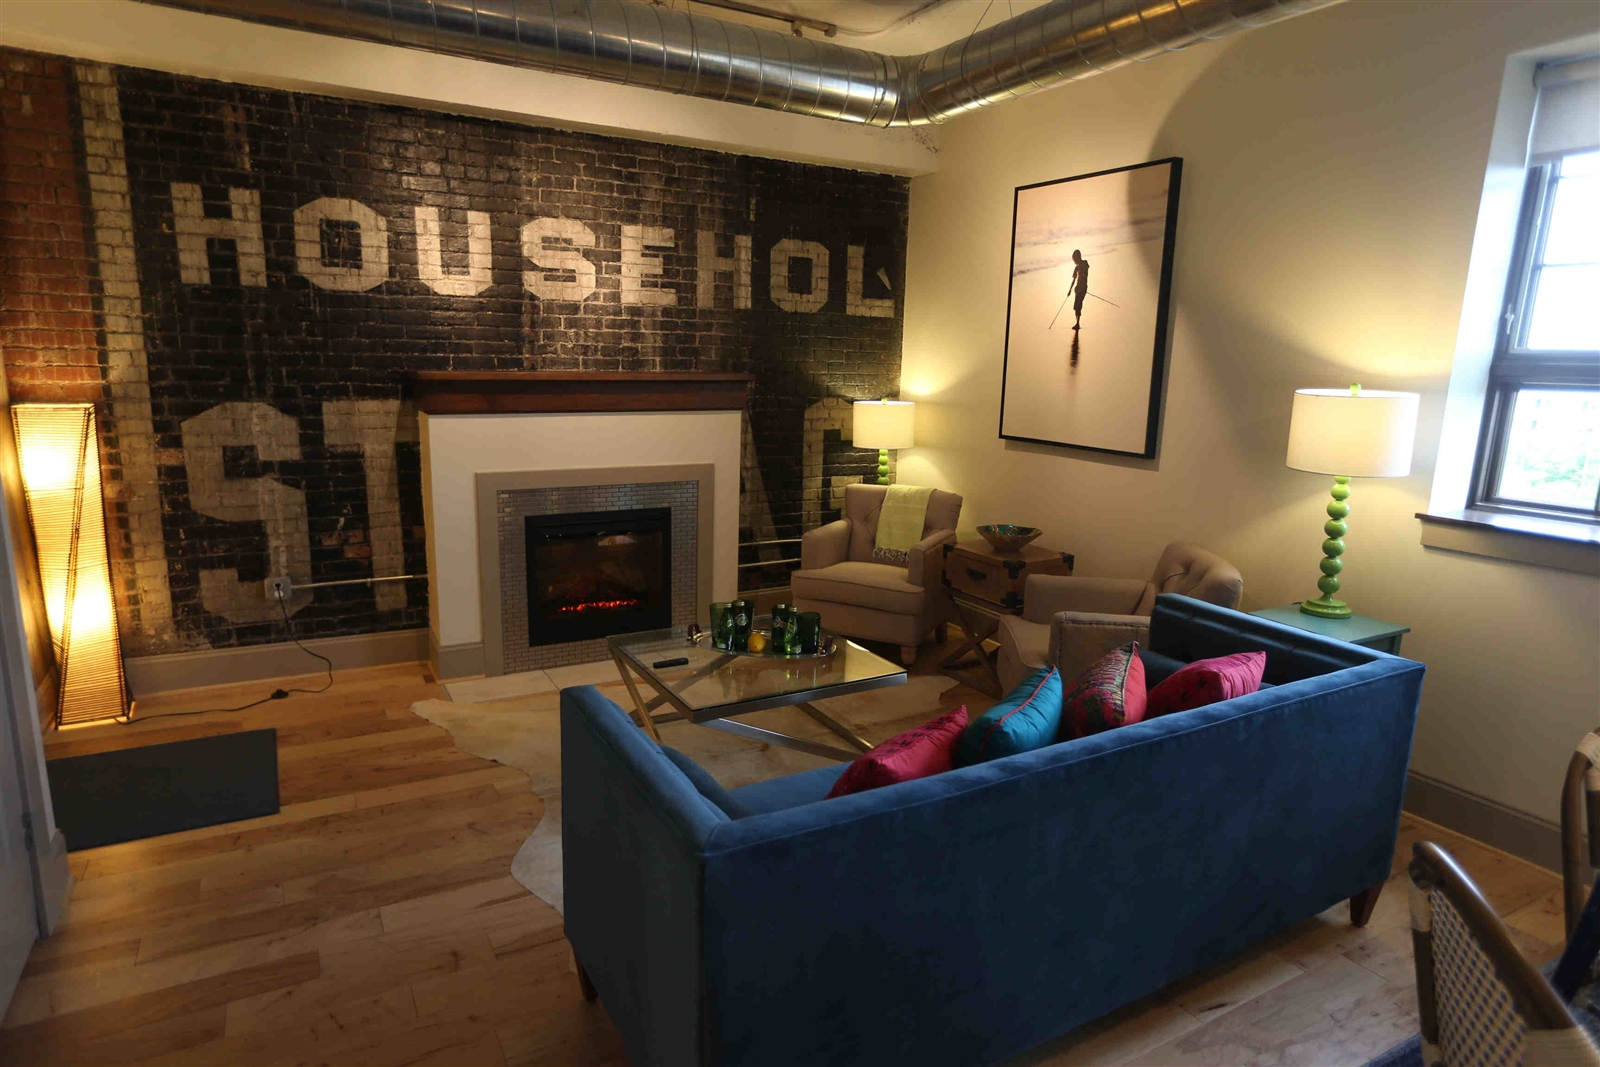 The living area of a one-bedroom apartment at the Turner Brothers Lofts. (John Hickey/Buffalo News)